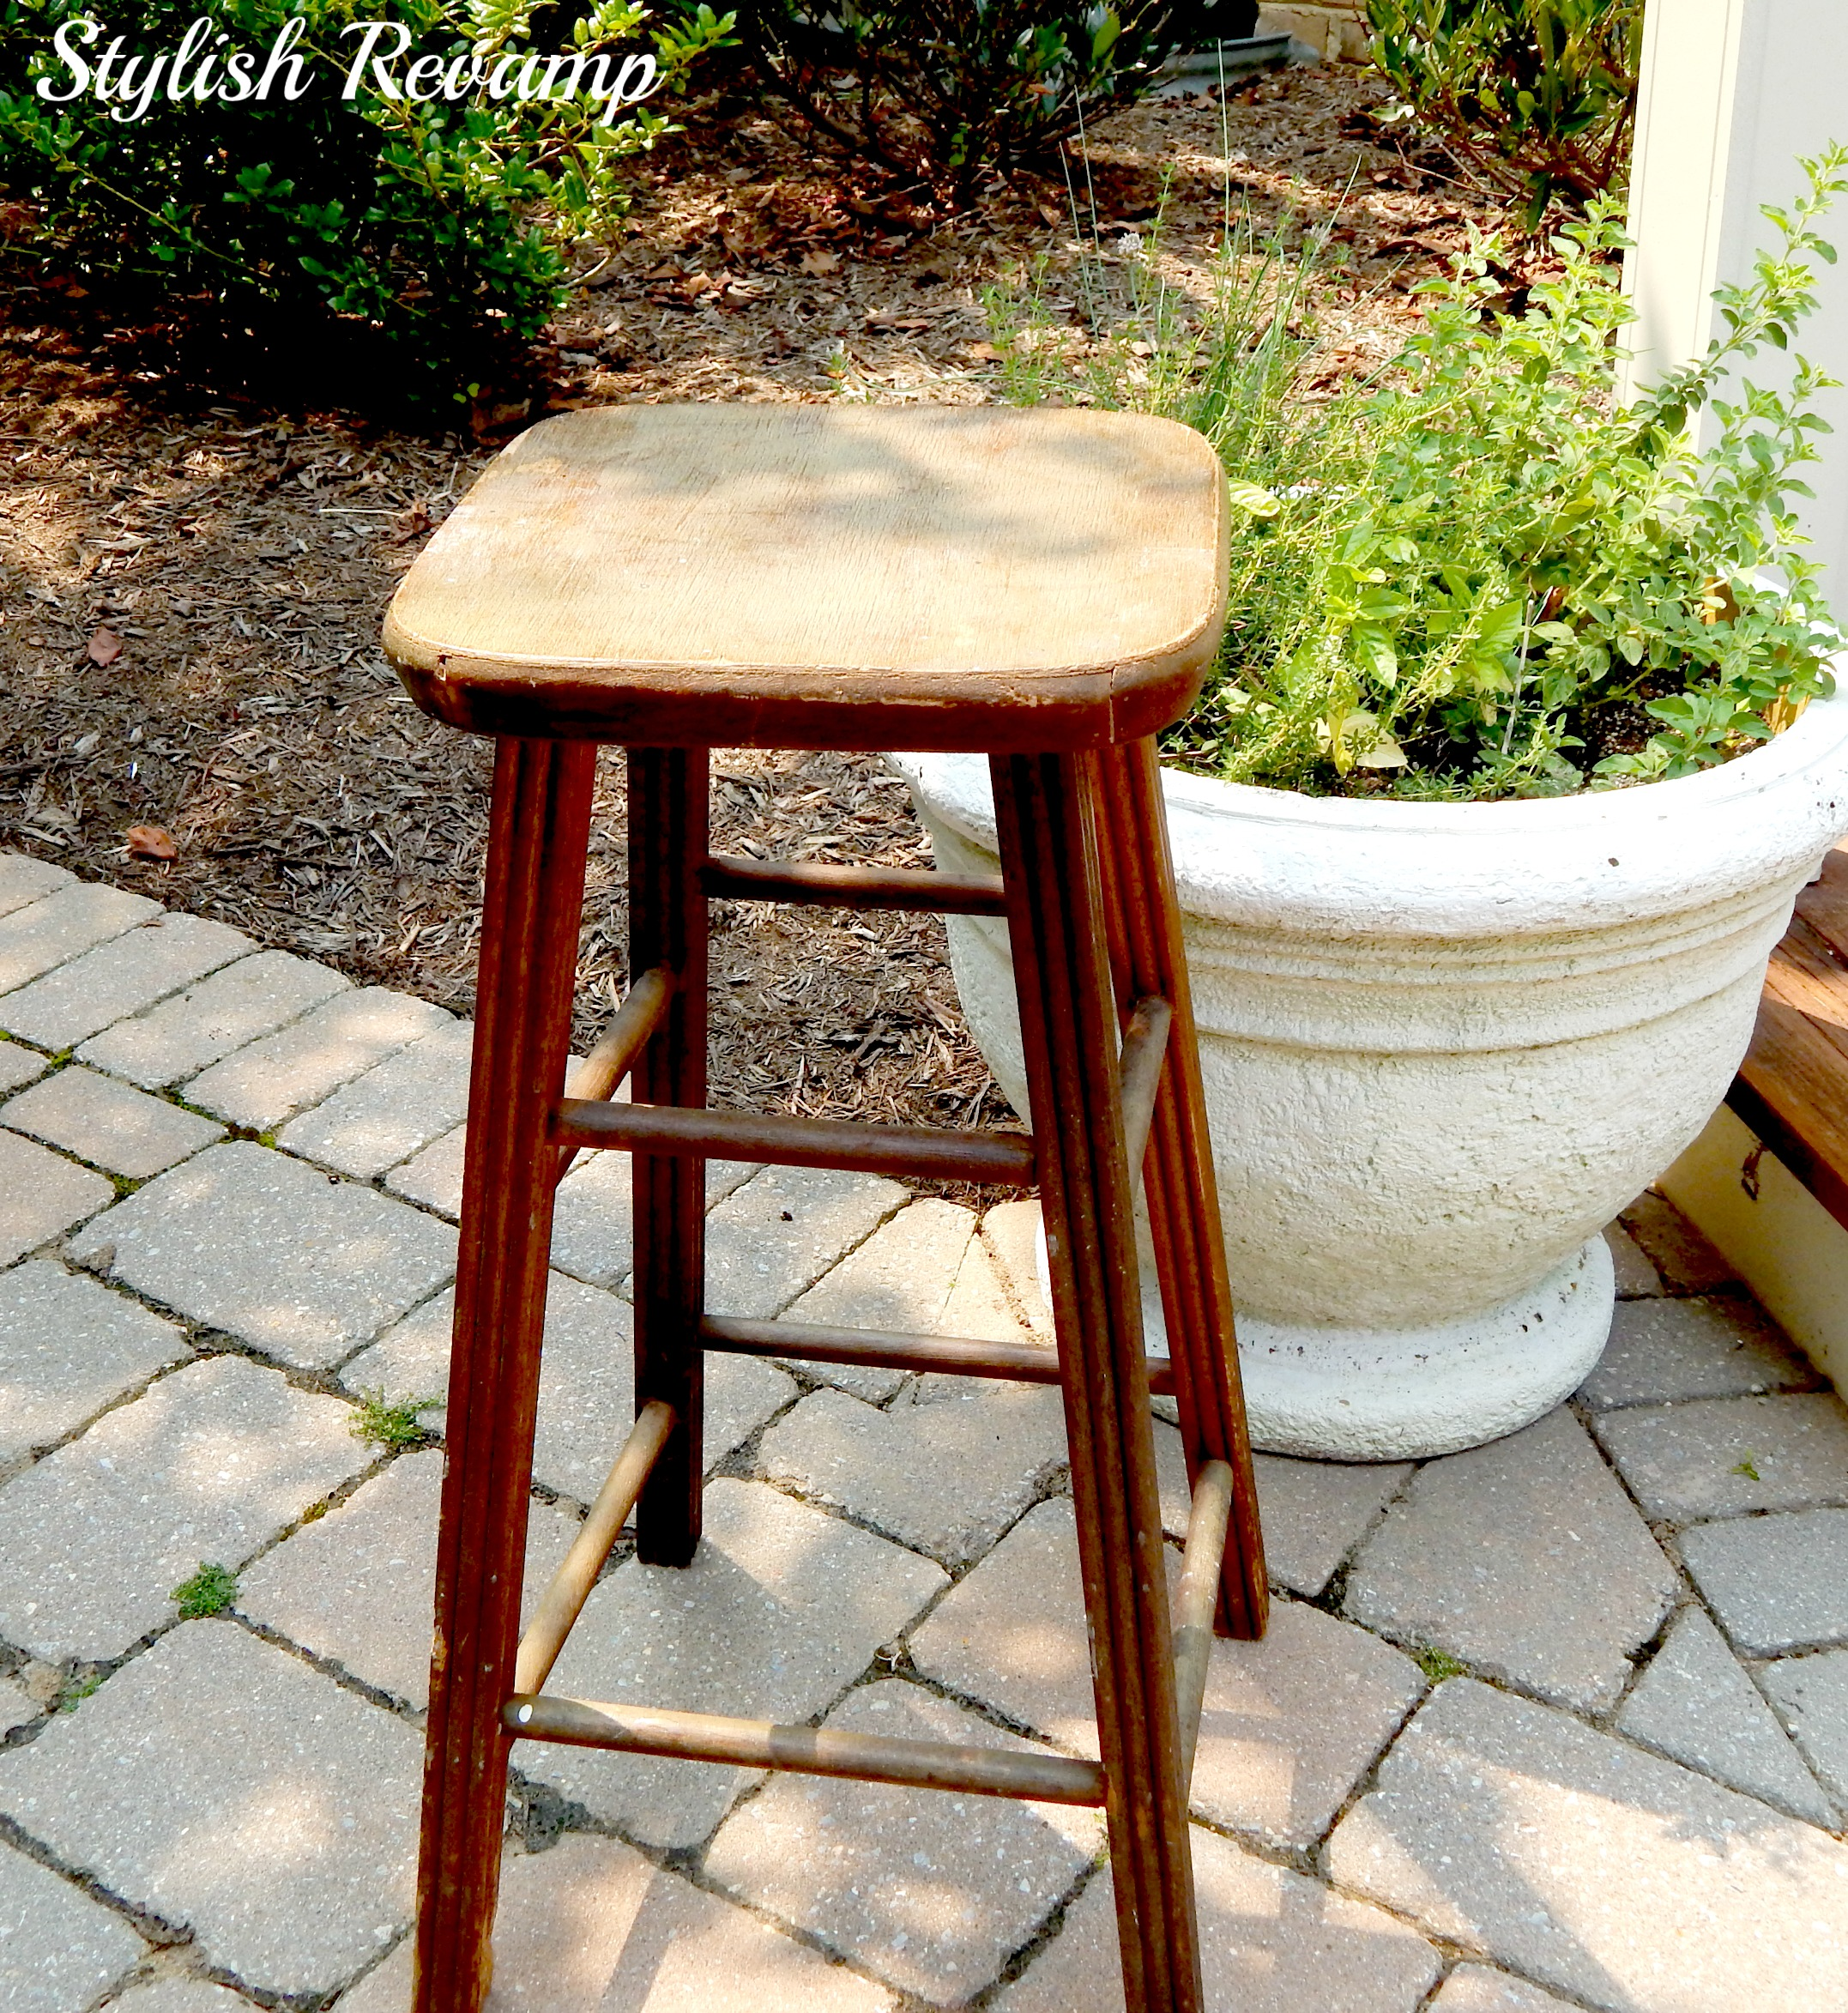 Vintage Wooden Stool From Thrift Shop